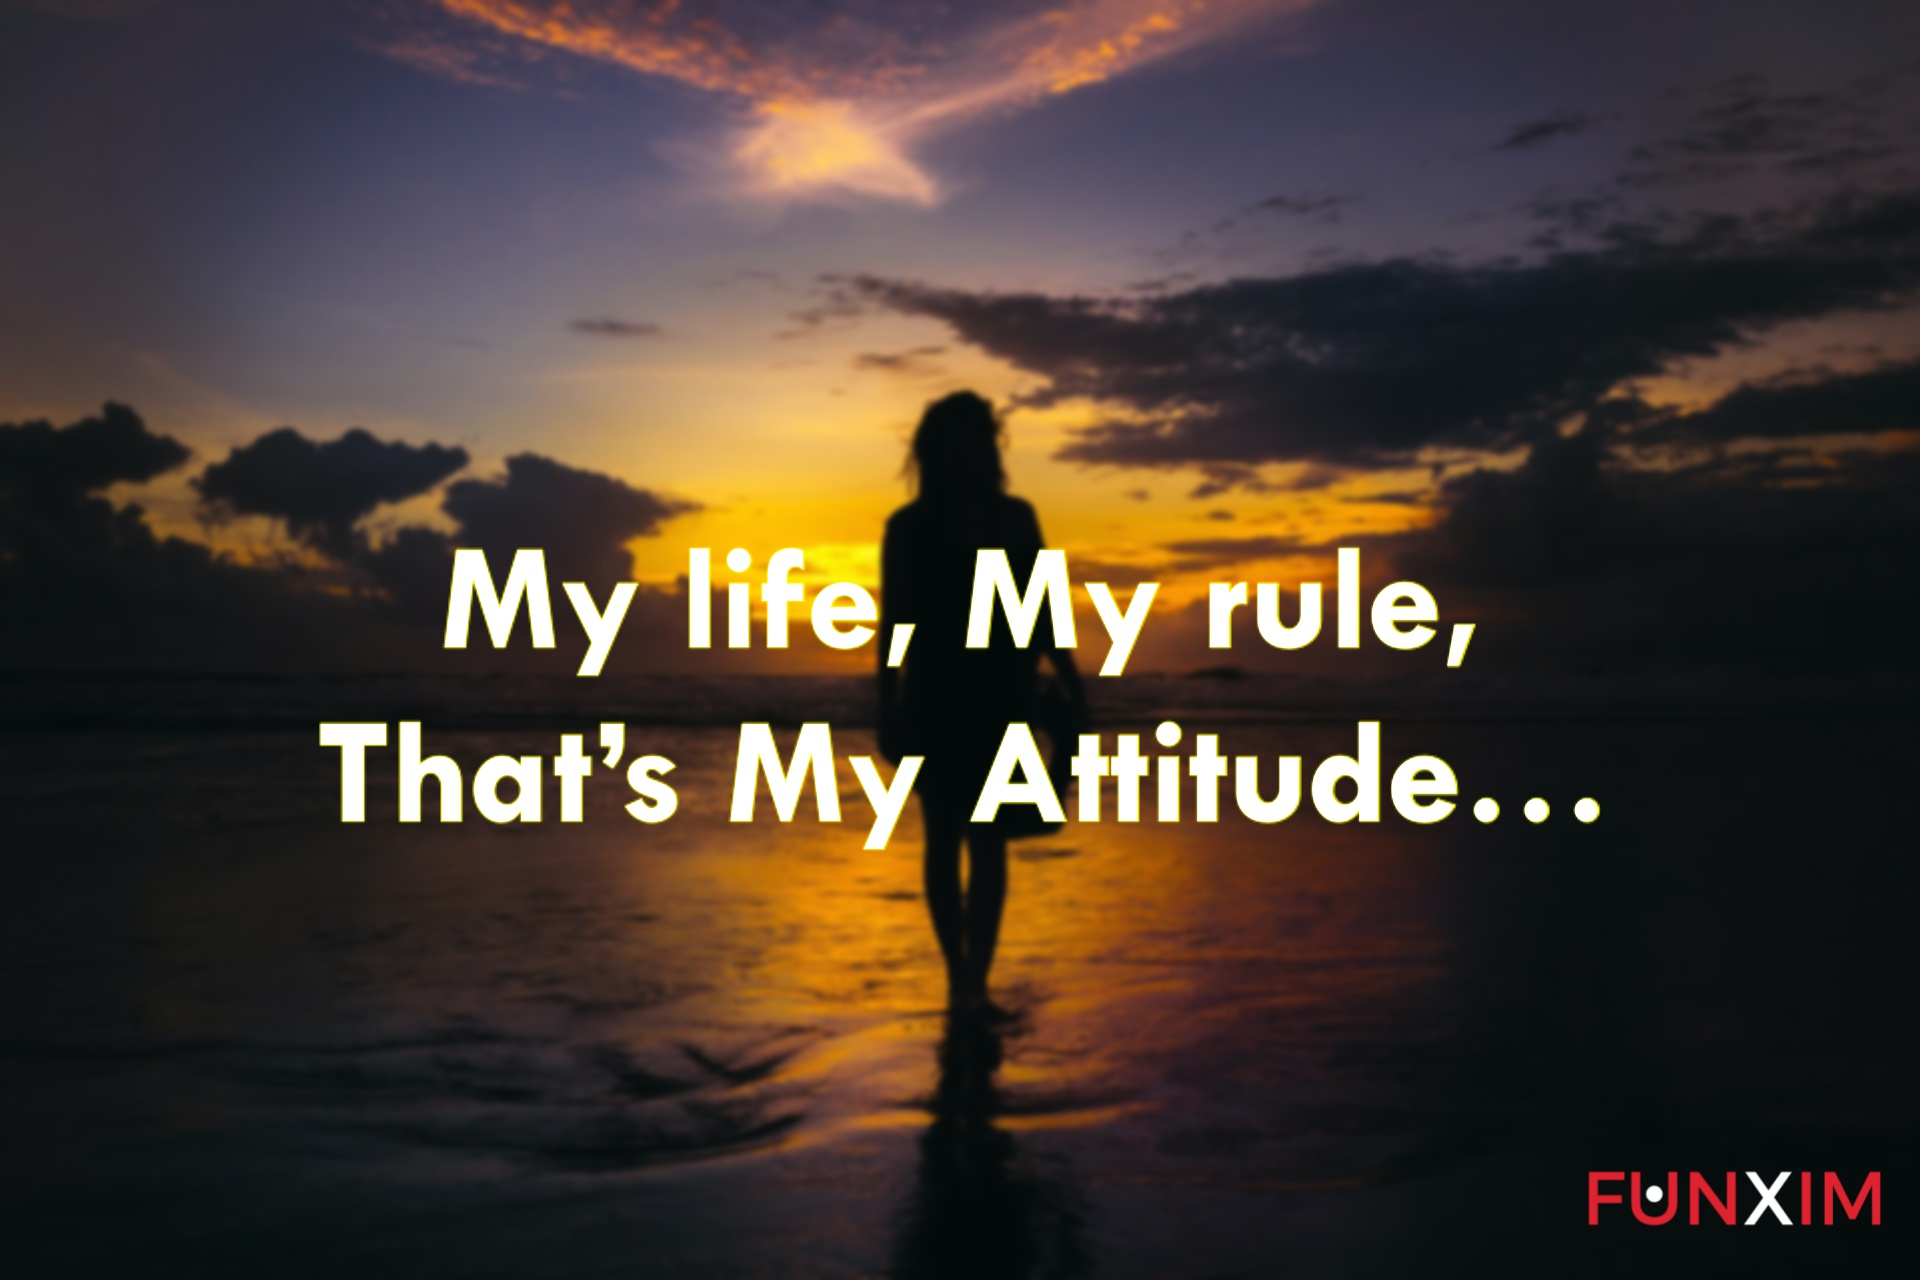 My life, my rule, that's my attitude…